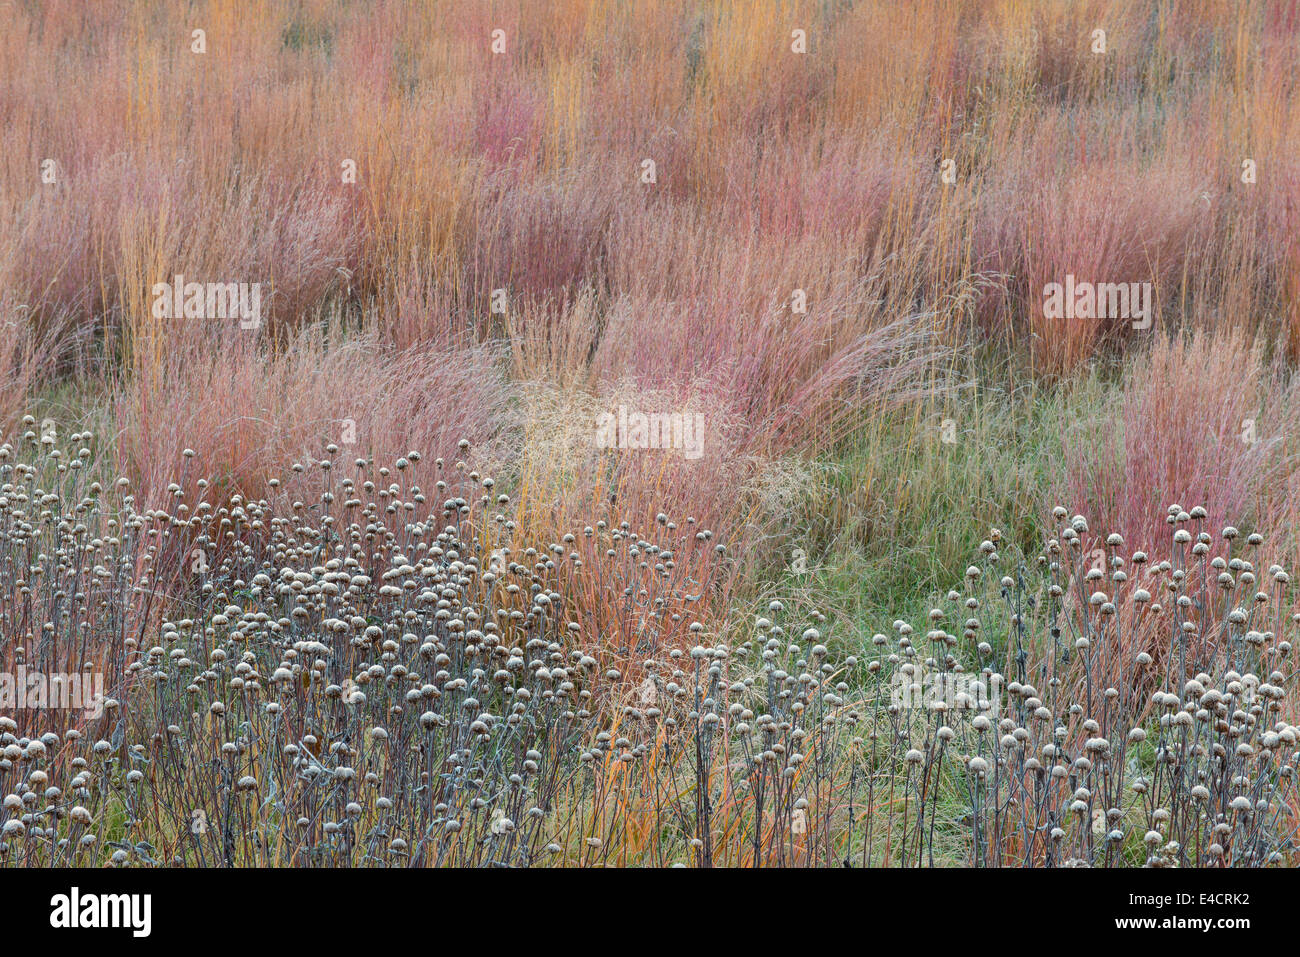 Frost covers these seed heads in an Oak Savanna in Stony Creek Metropark, Michigan, USA. - Stock Image